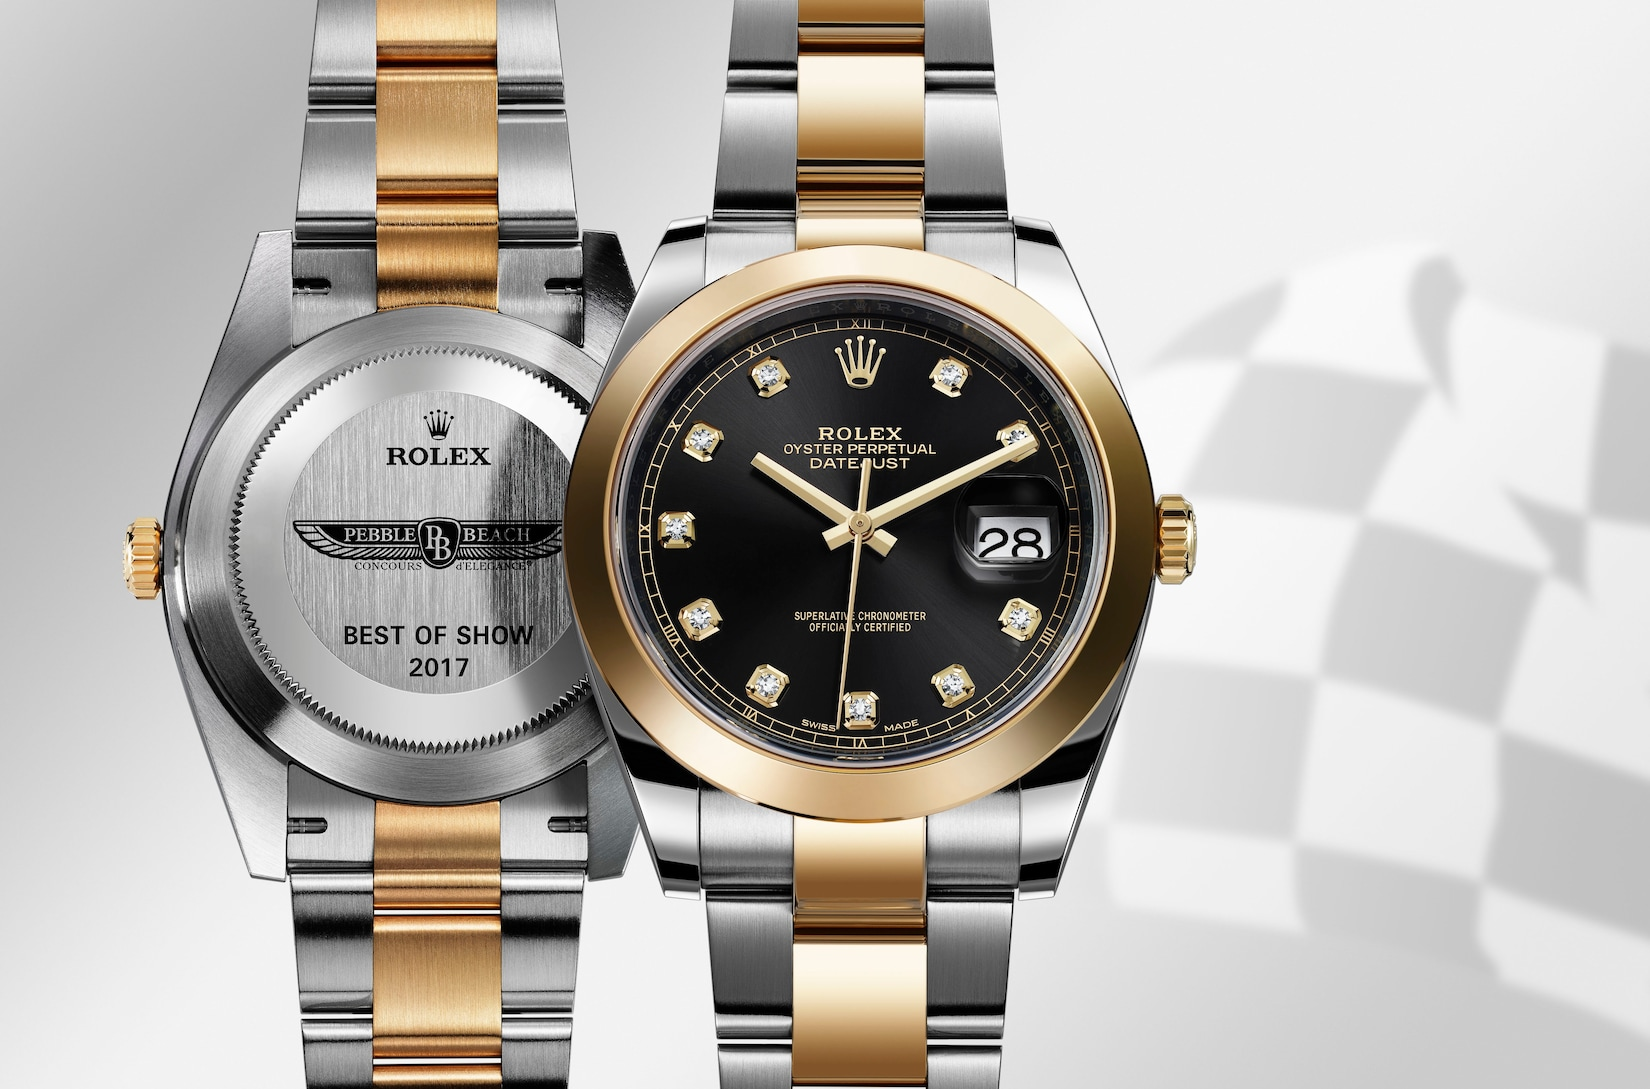 Rolex Oyster Perpetual Datejust 41 watch with special engraving on case back was given to Rolex Best of Show winner at Pebble Beach Concours d' Elegance 2017.